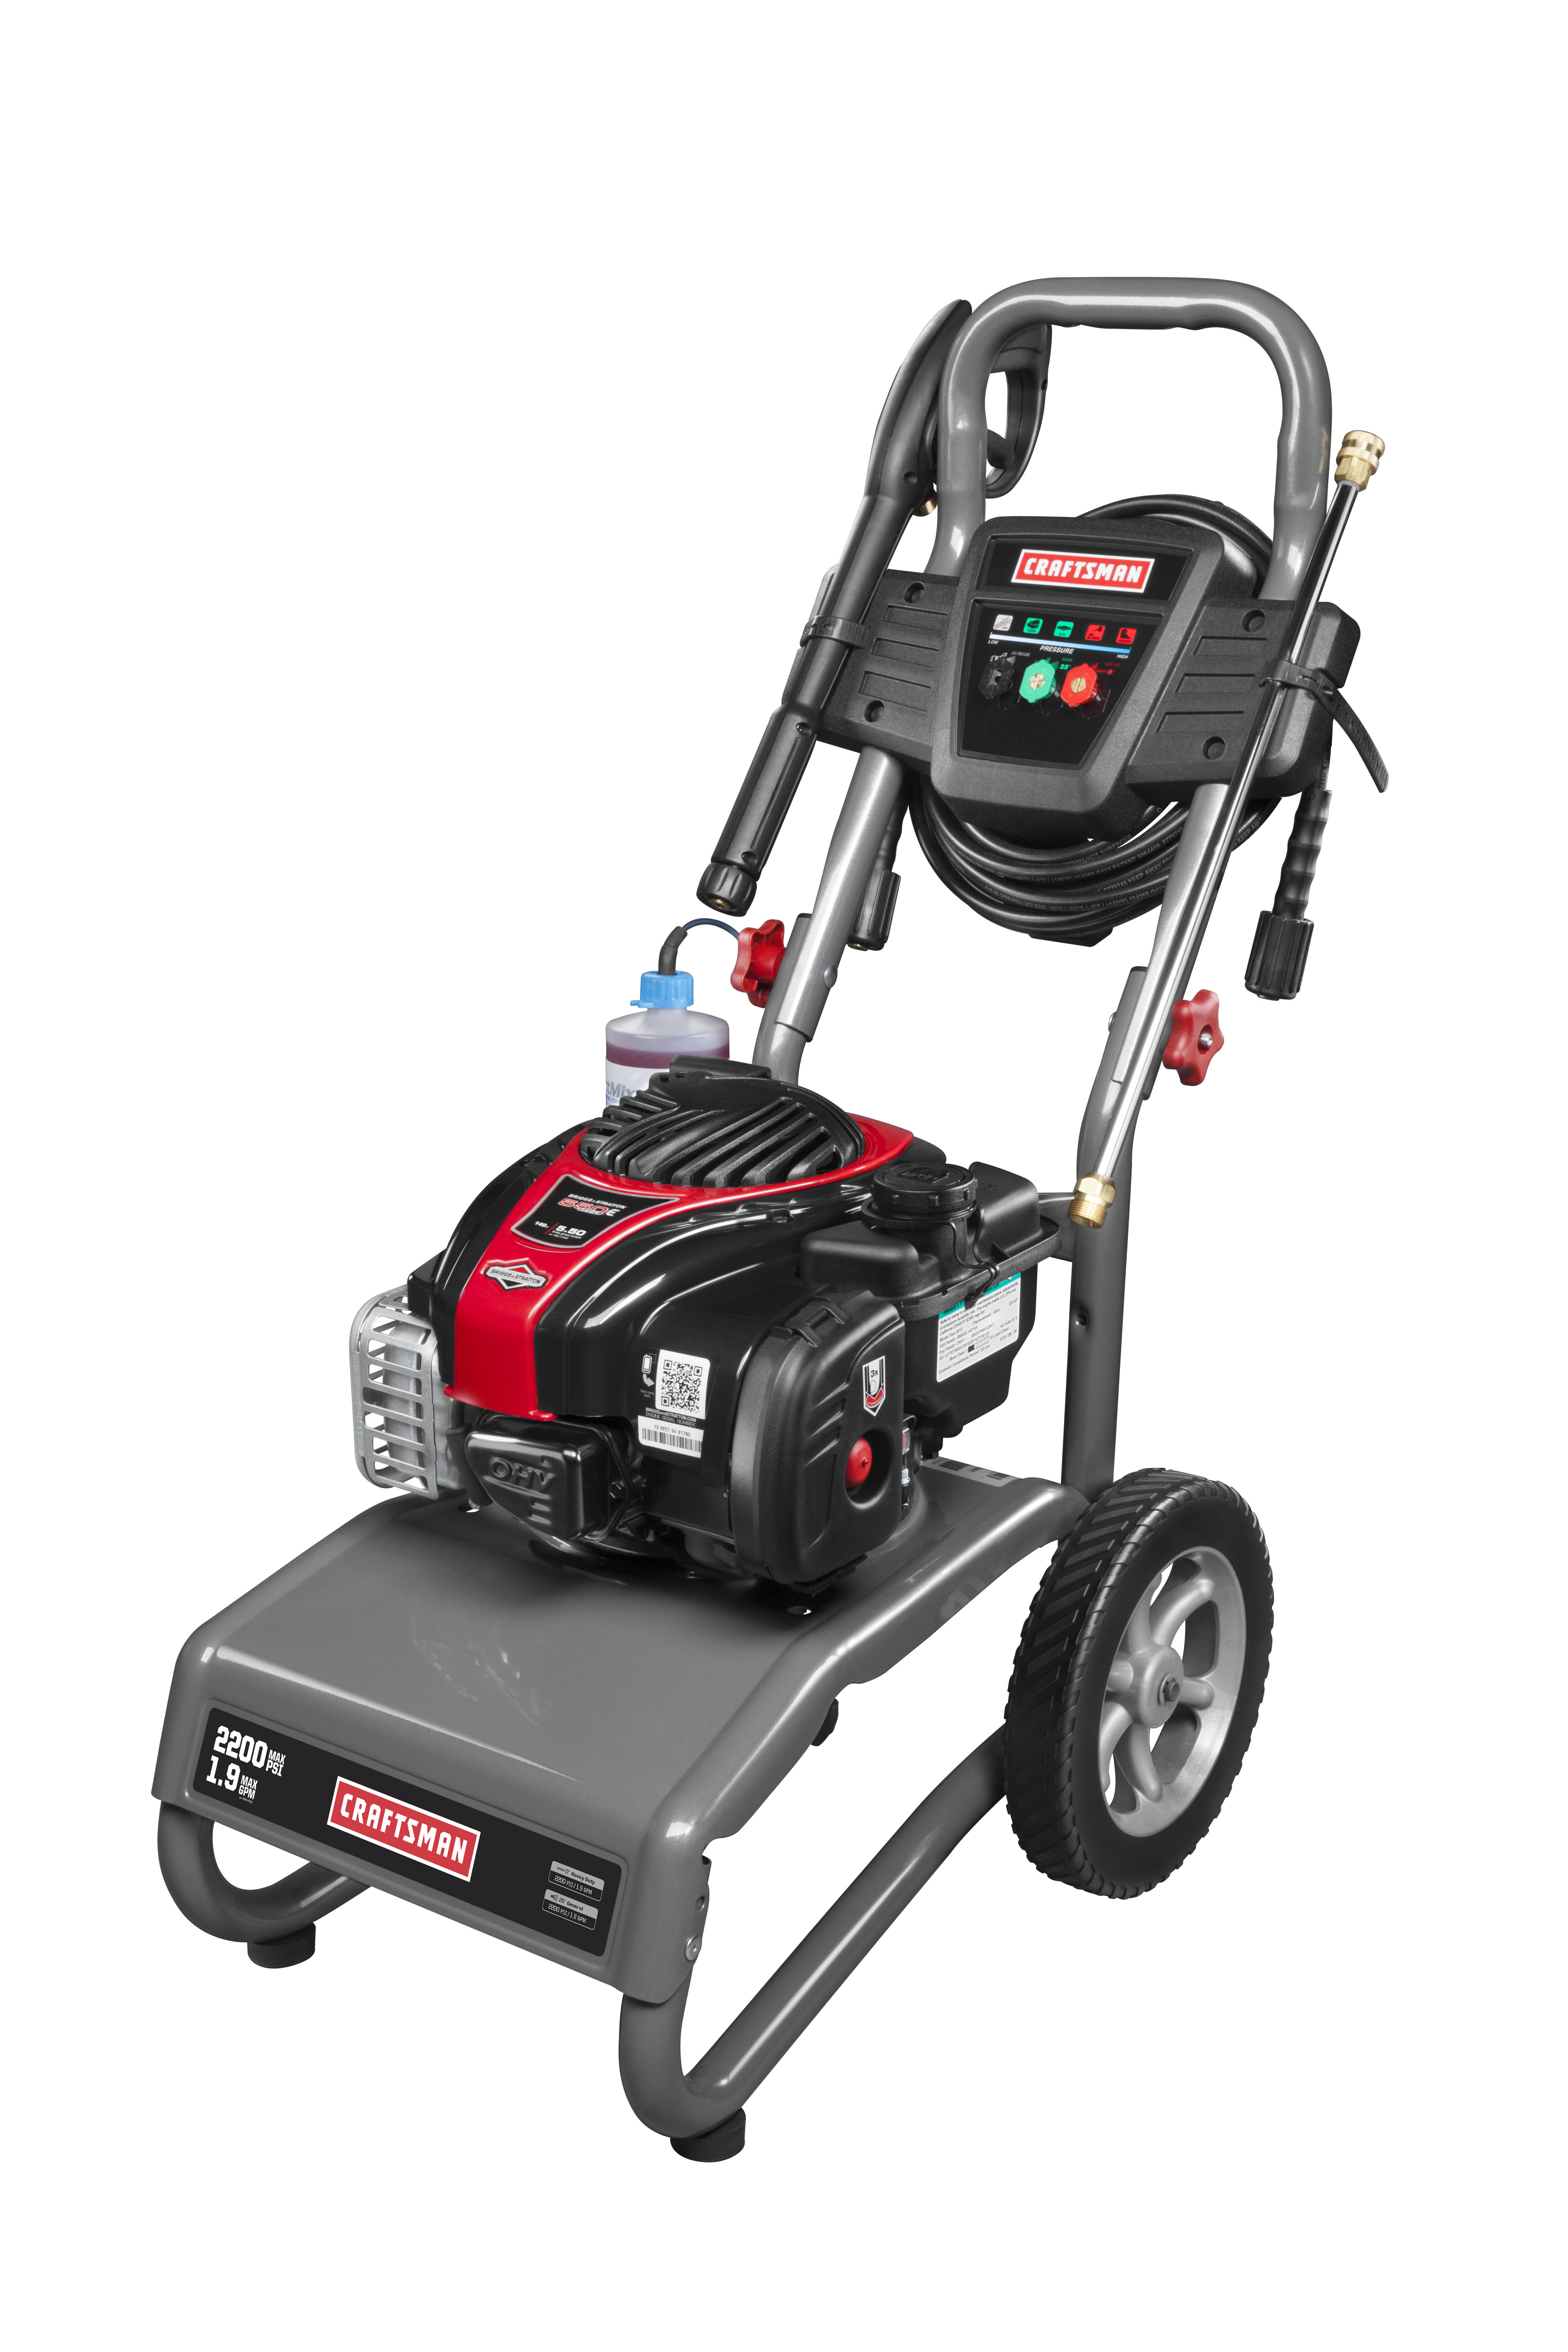 Craftsman 2200 PSI 1.9 GPM Gas-Powered Pressure Washer